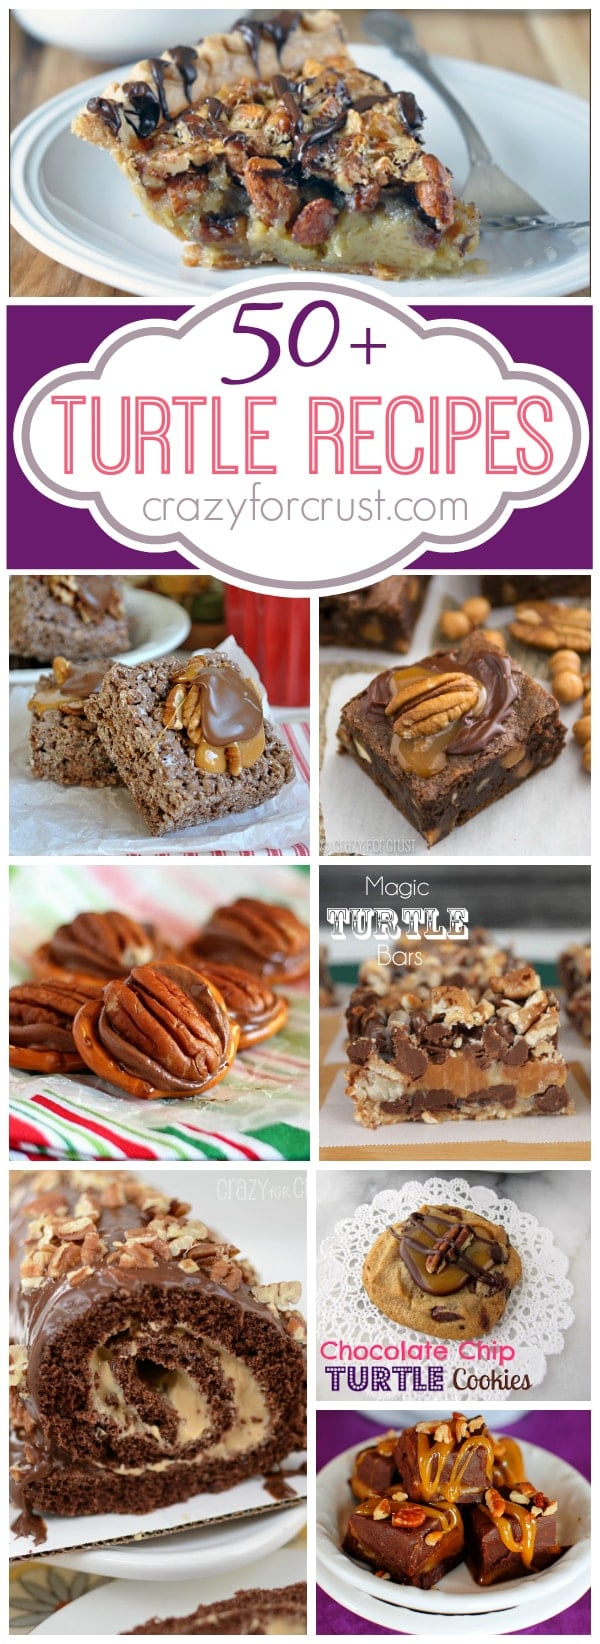 50 Turtle Recipes | www.crazyforcrust.com | It's a collection of caramel, pecans, and chocolate galore!